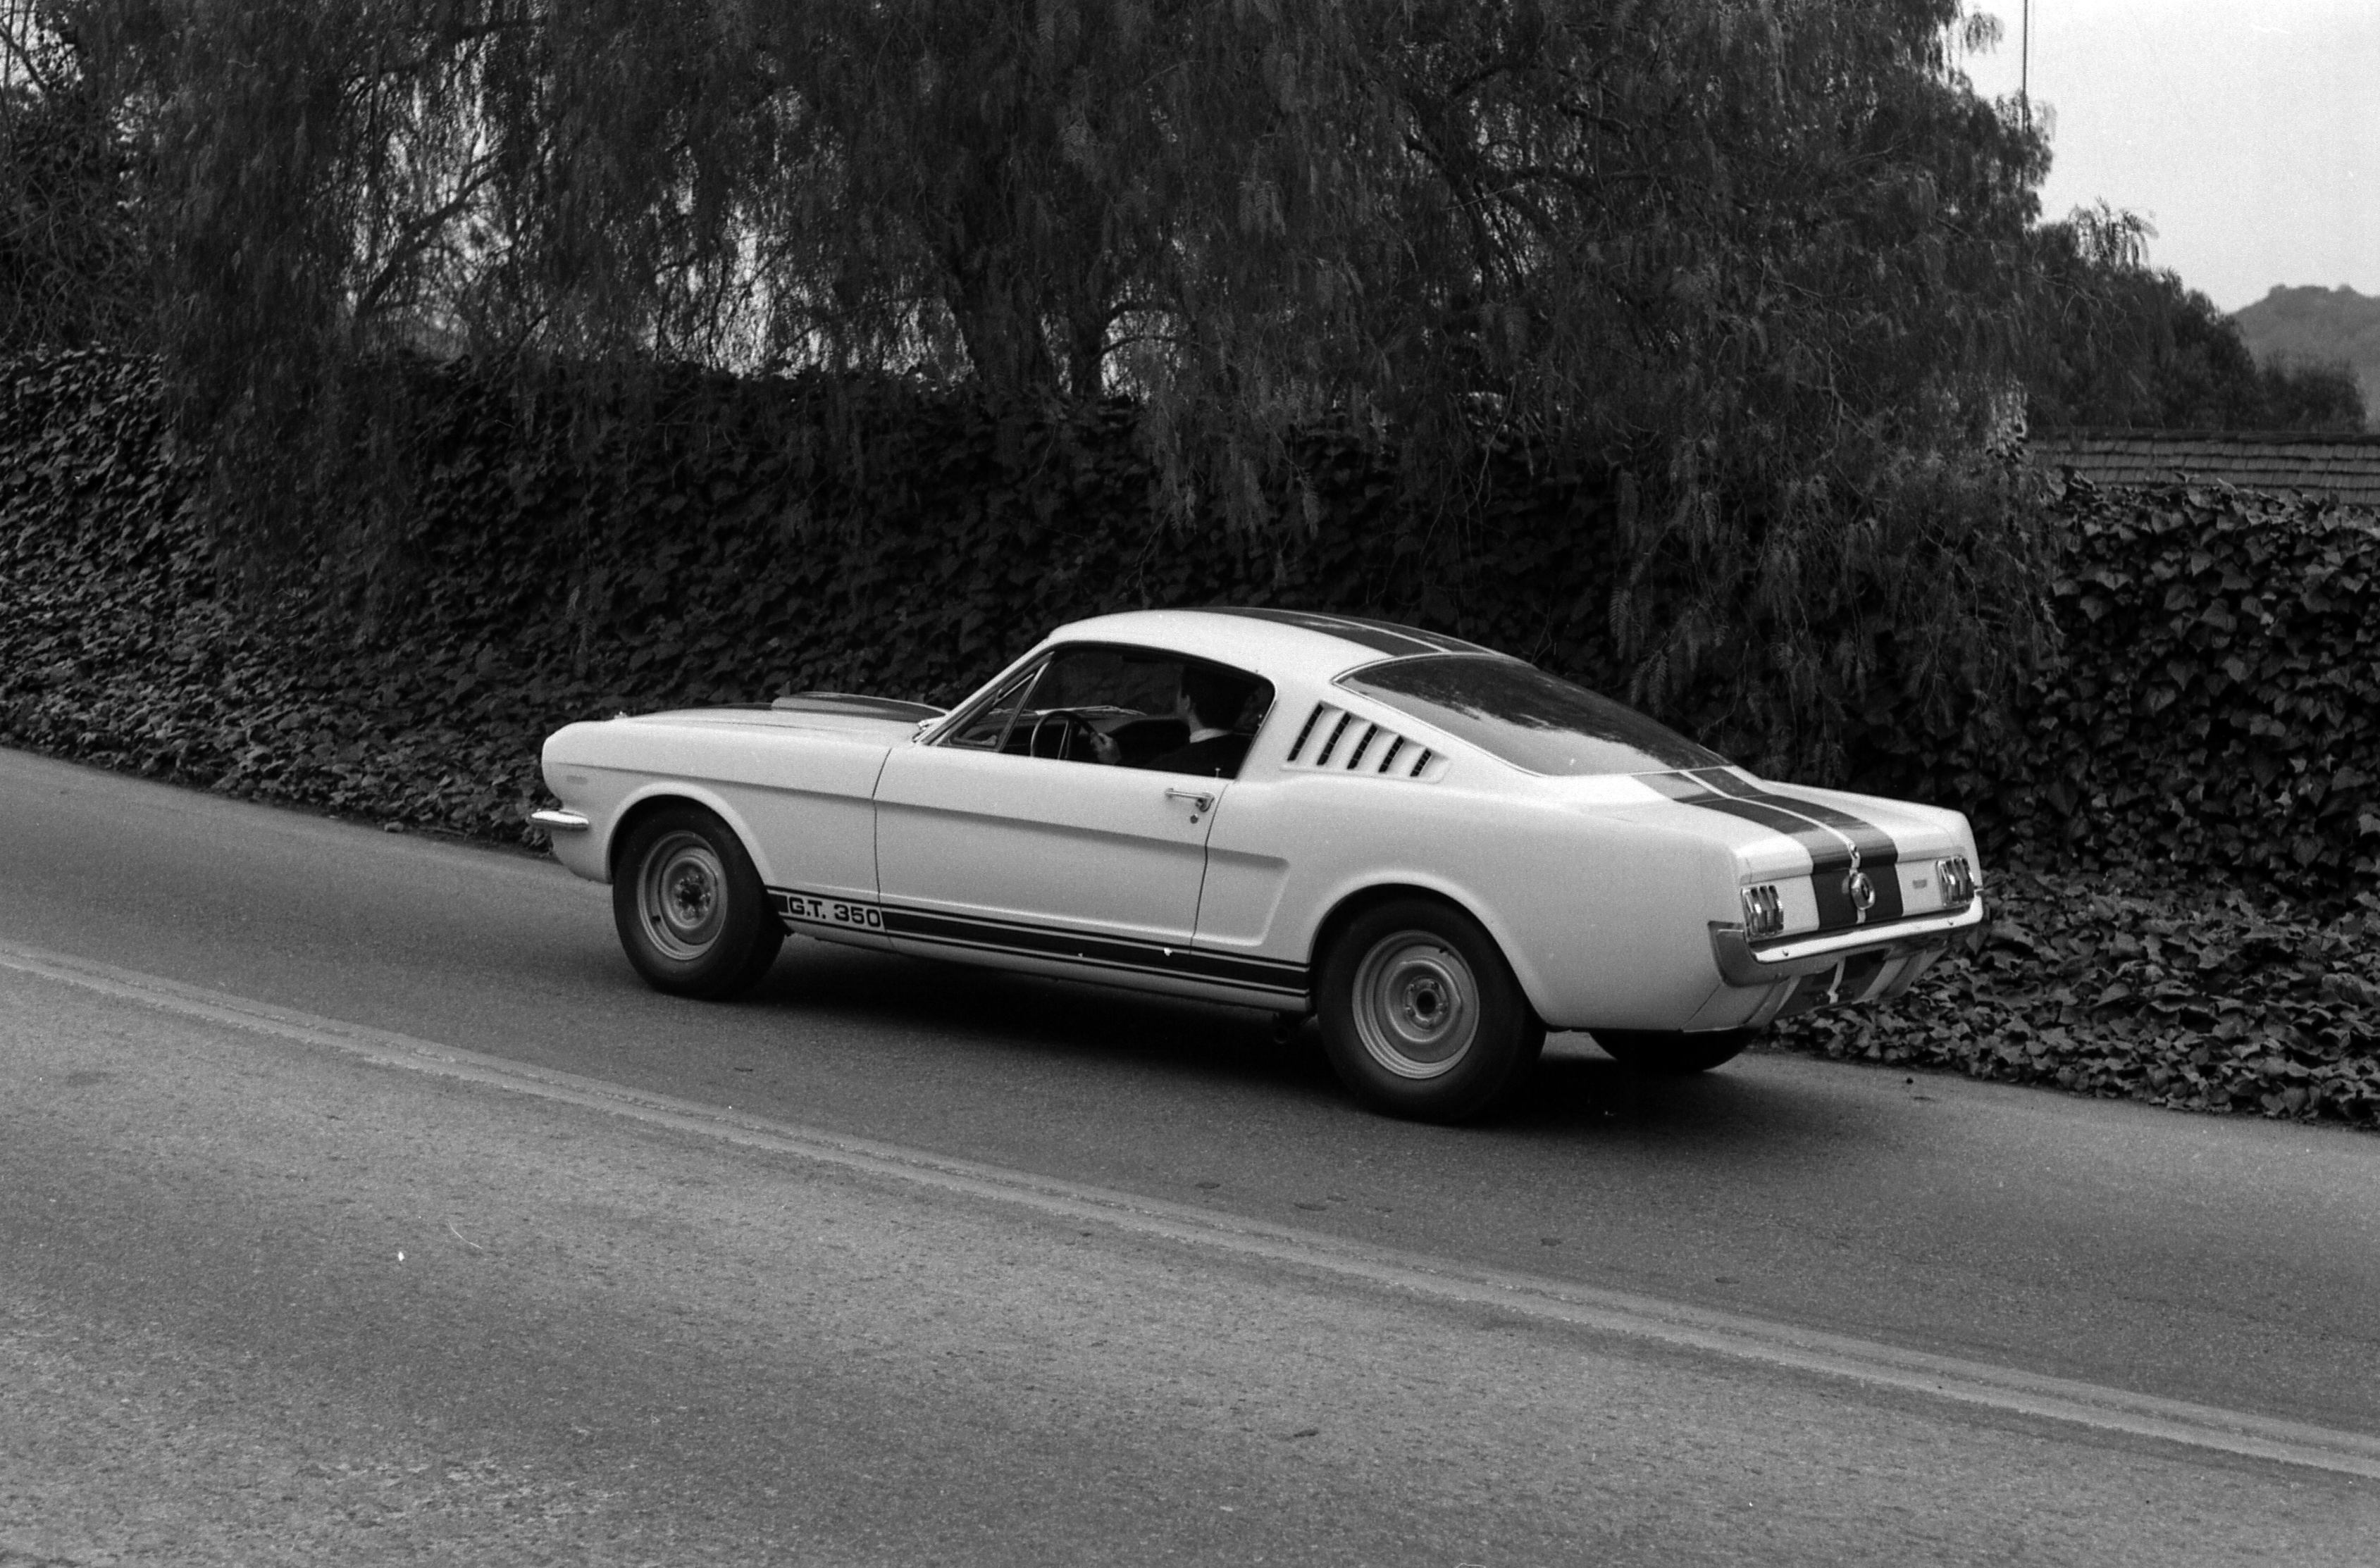 Original shelby gt350 mustang prototypes 1965 ford shelby gt350 mustang prototype 5s003 during advertising photoshoot showing stock steel wheels on